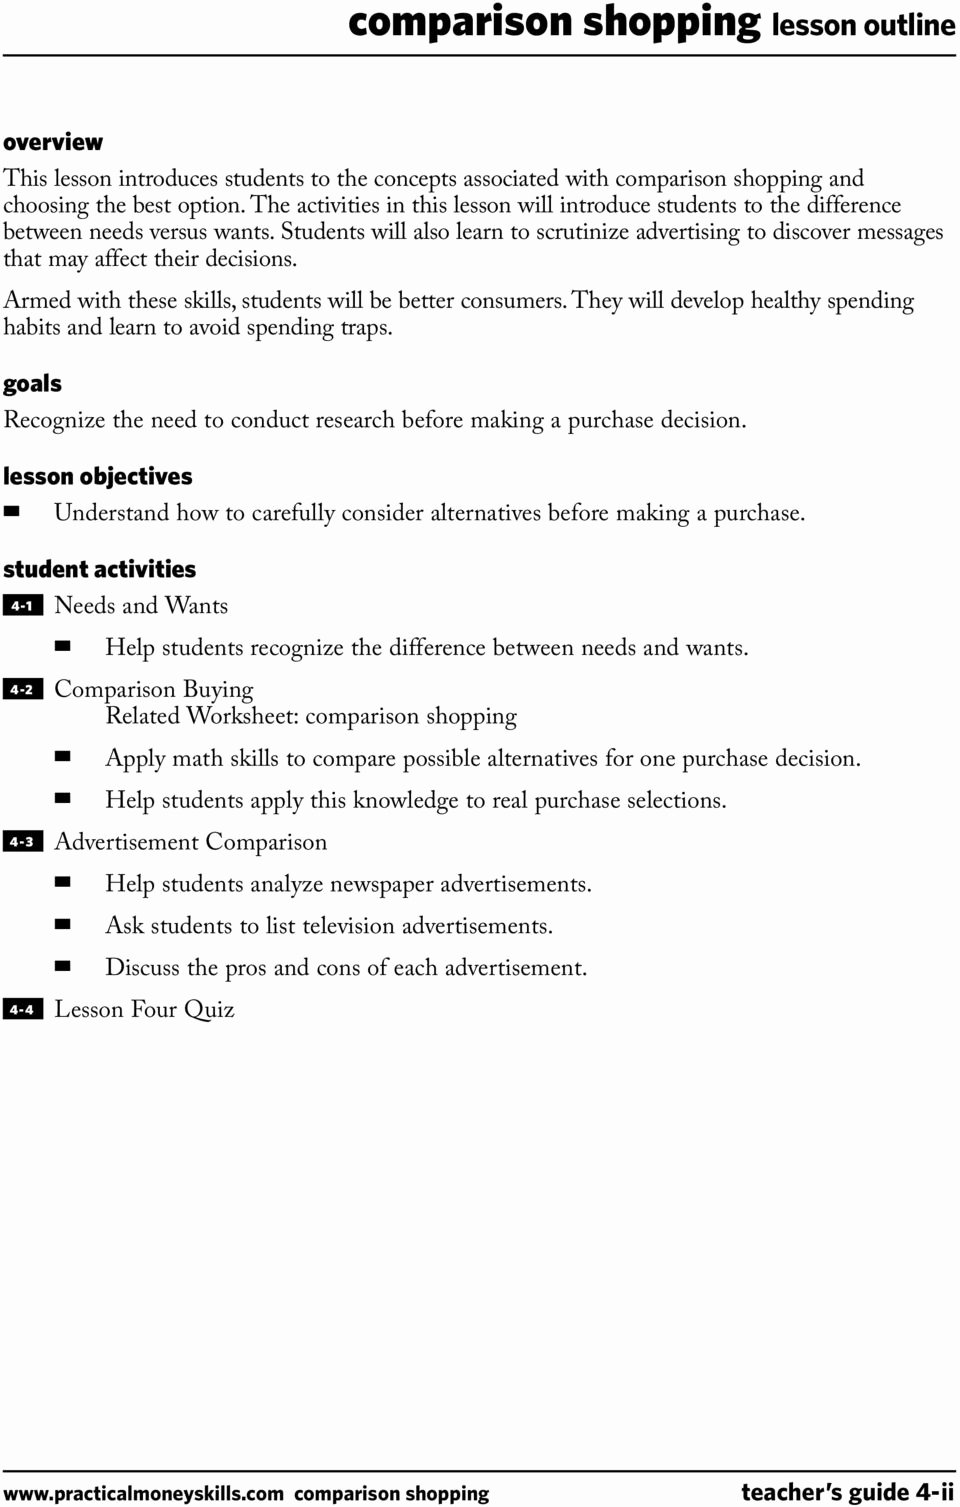 Comparison Shopping Worksheets for Students Lovely Teacher S Guide Lesson Four Parison Shopping 04 09